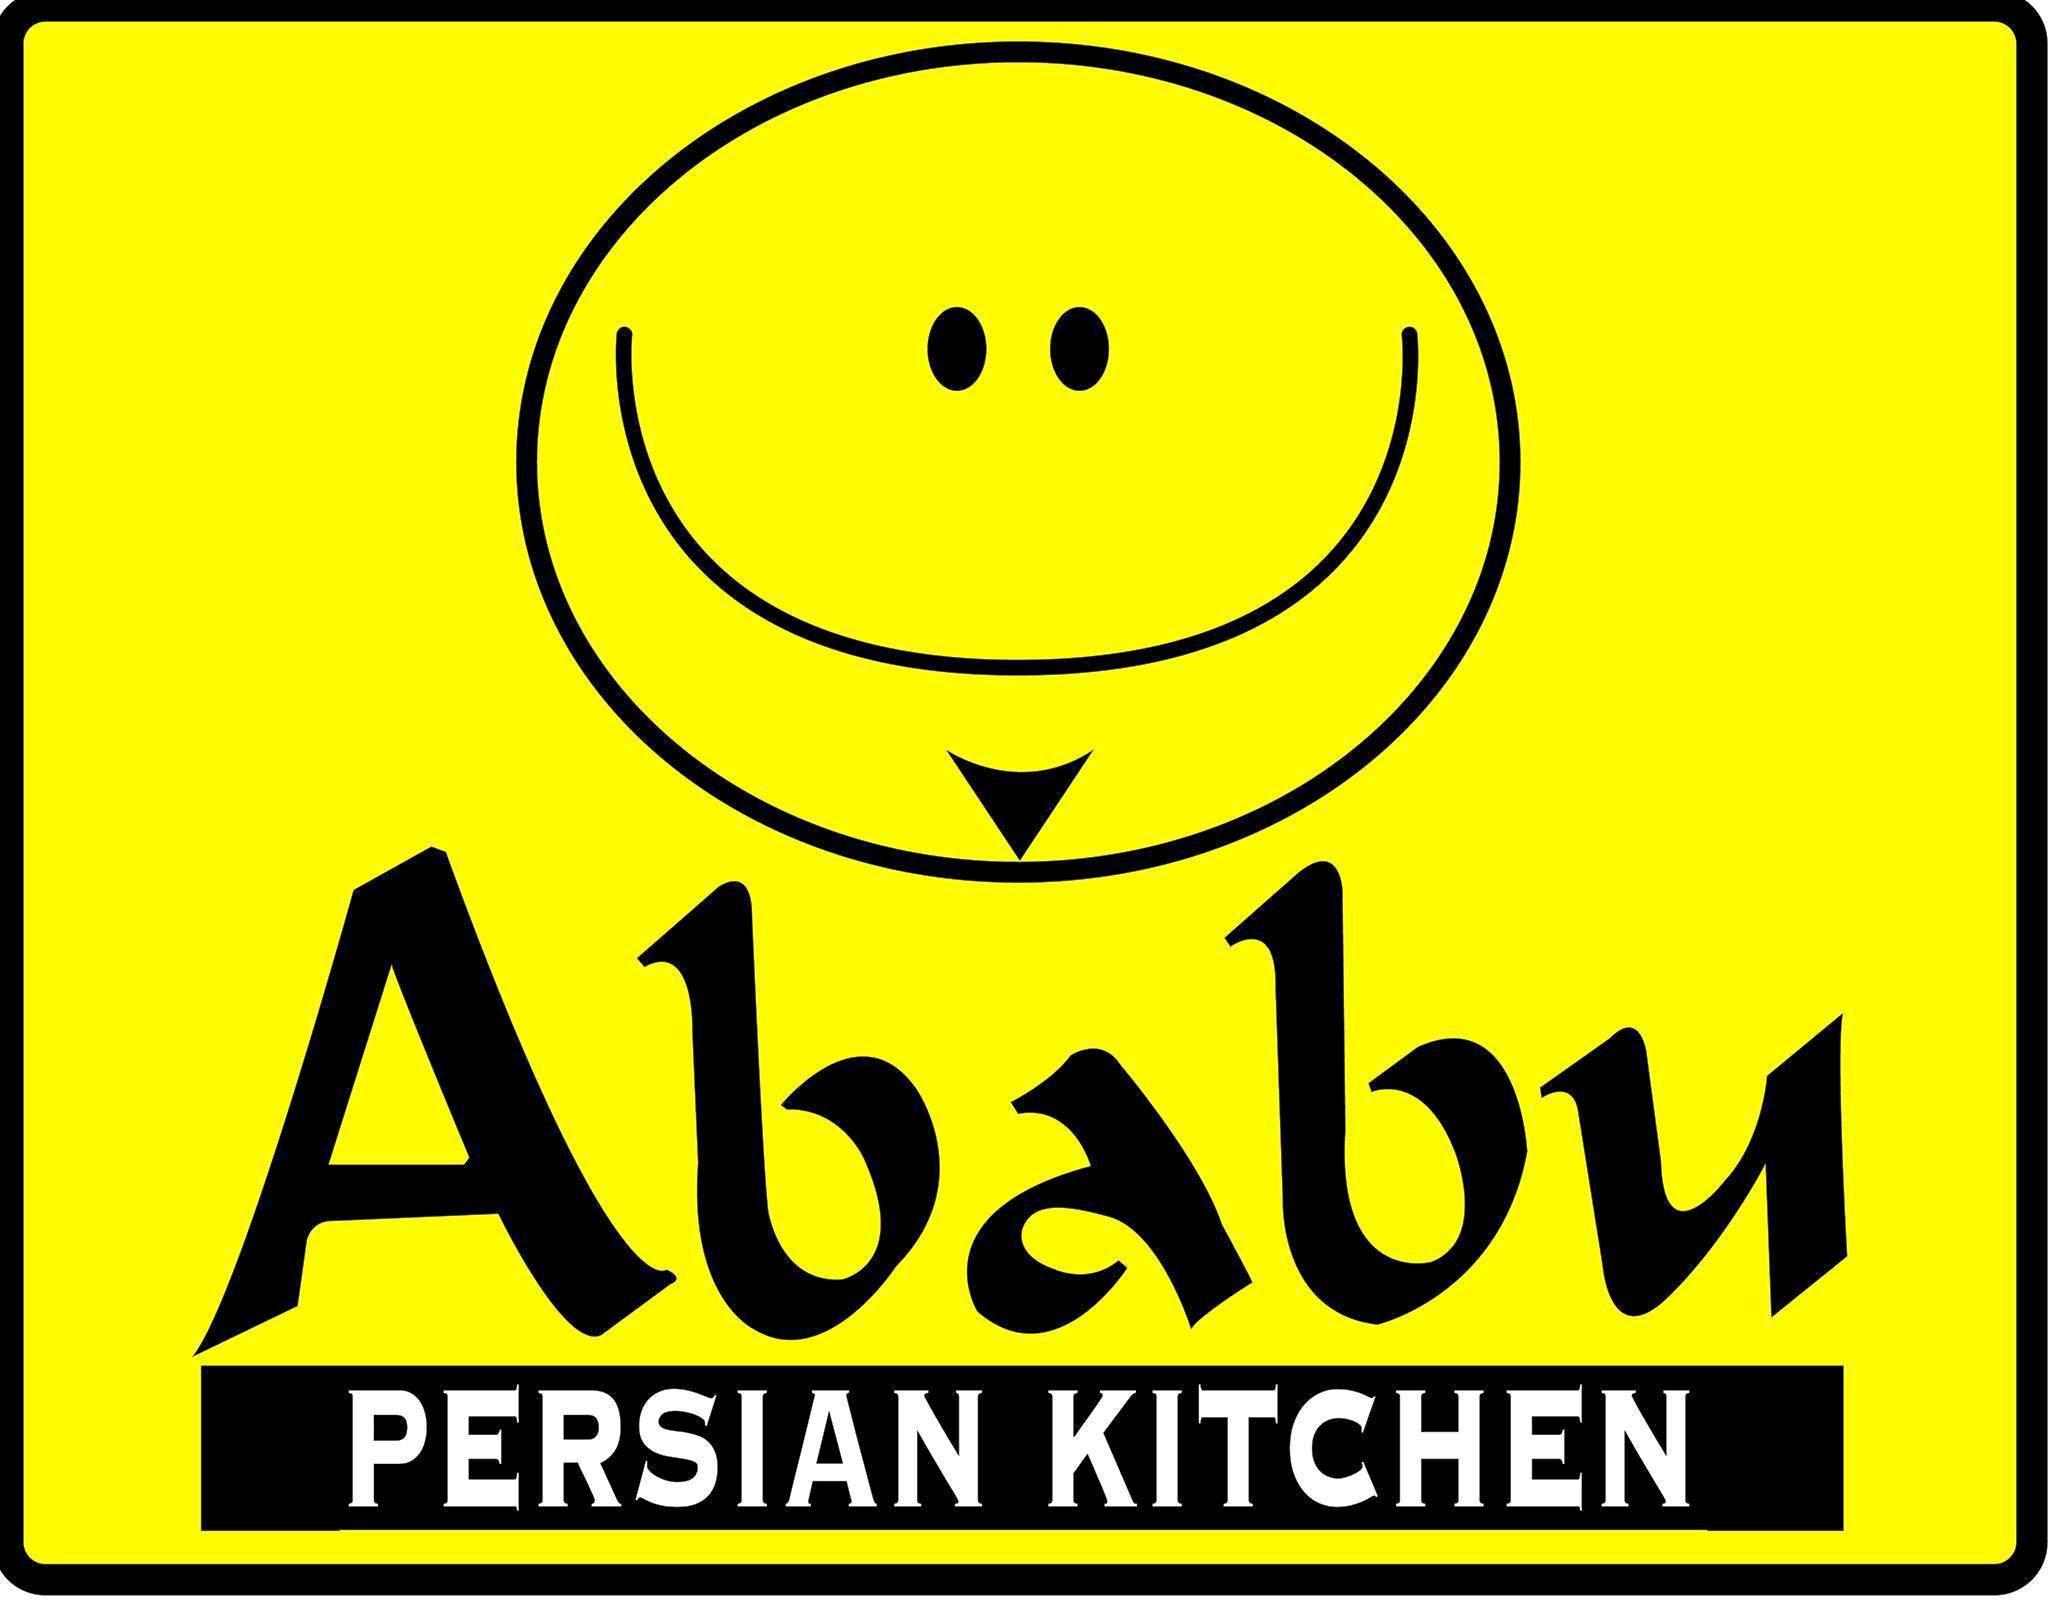 Ababu Persian Kitchen